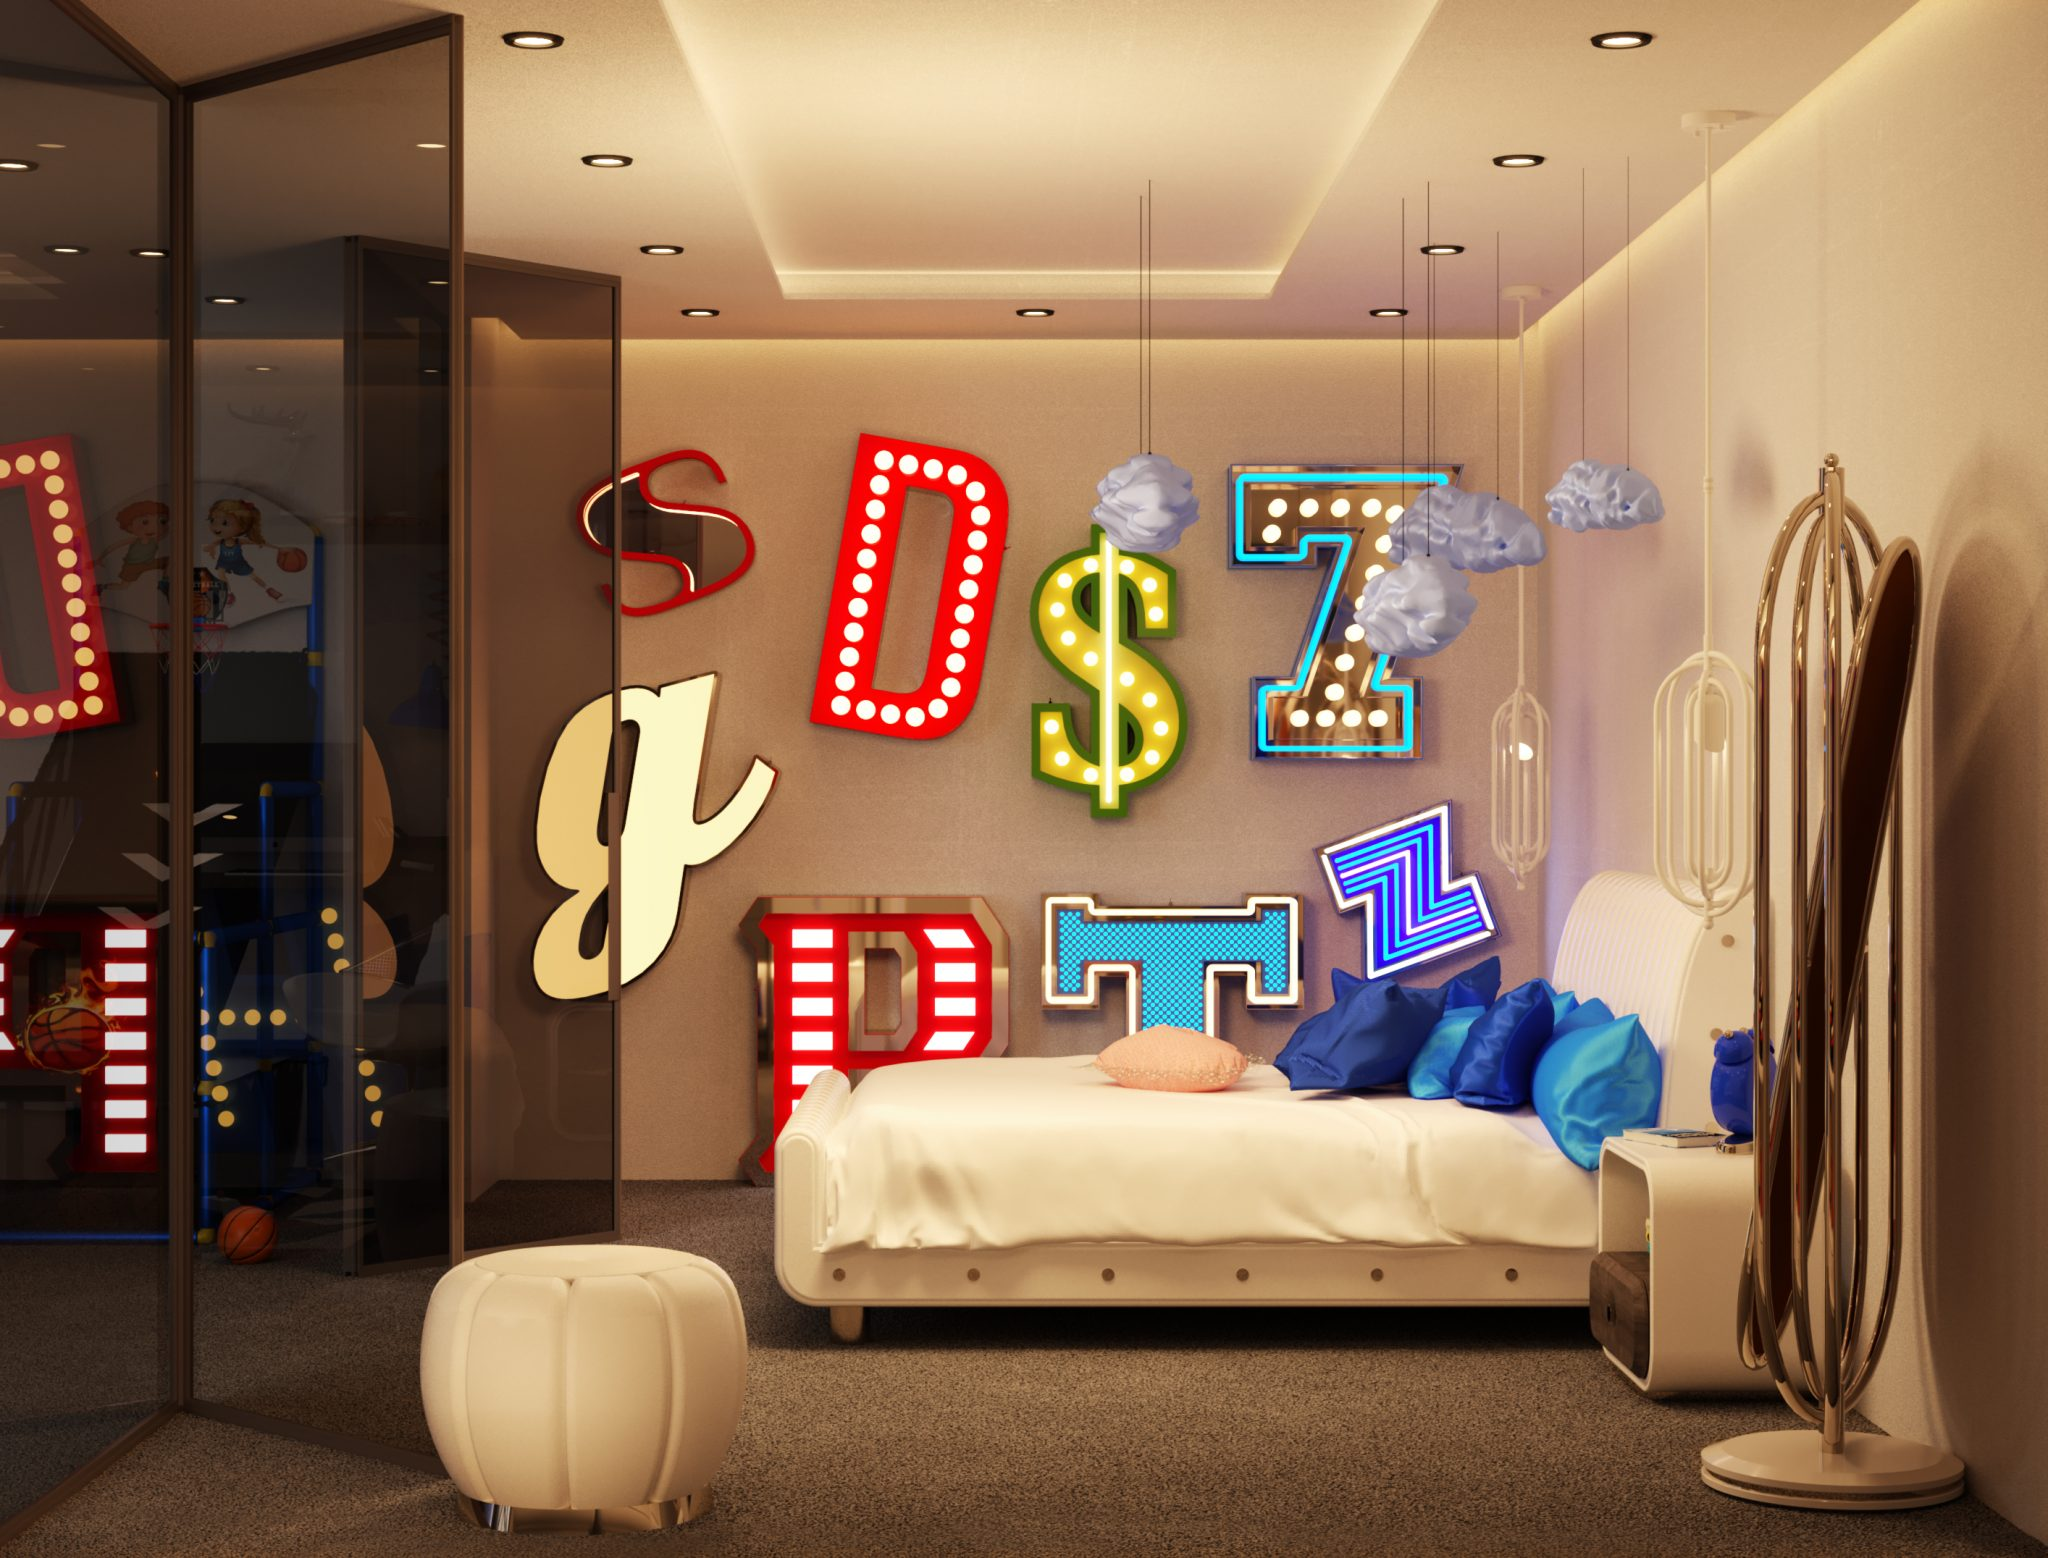 It's Time To Get Into Some Fun Bedroom Designs!